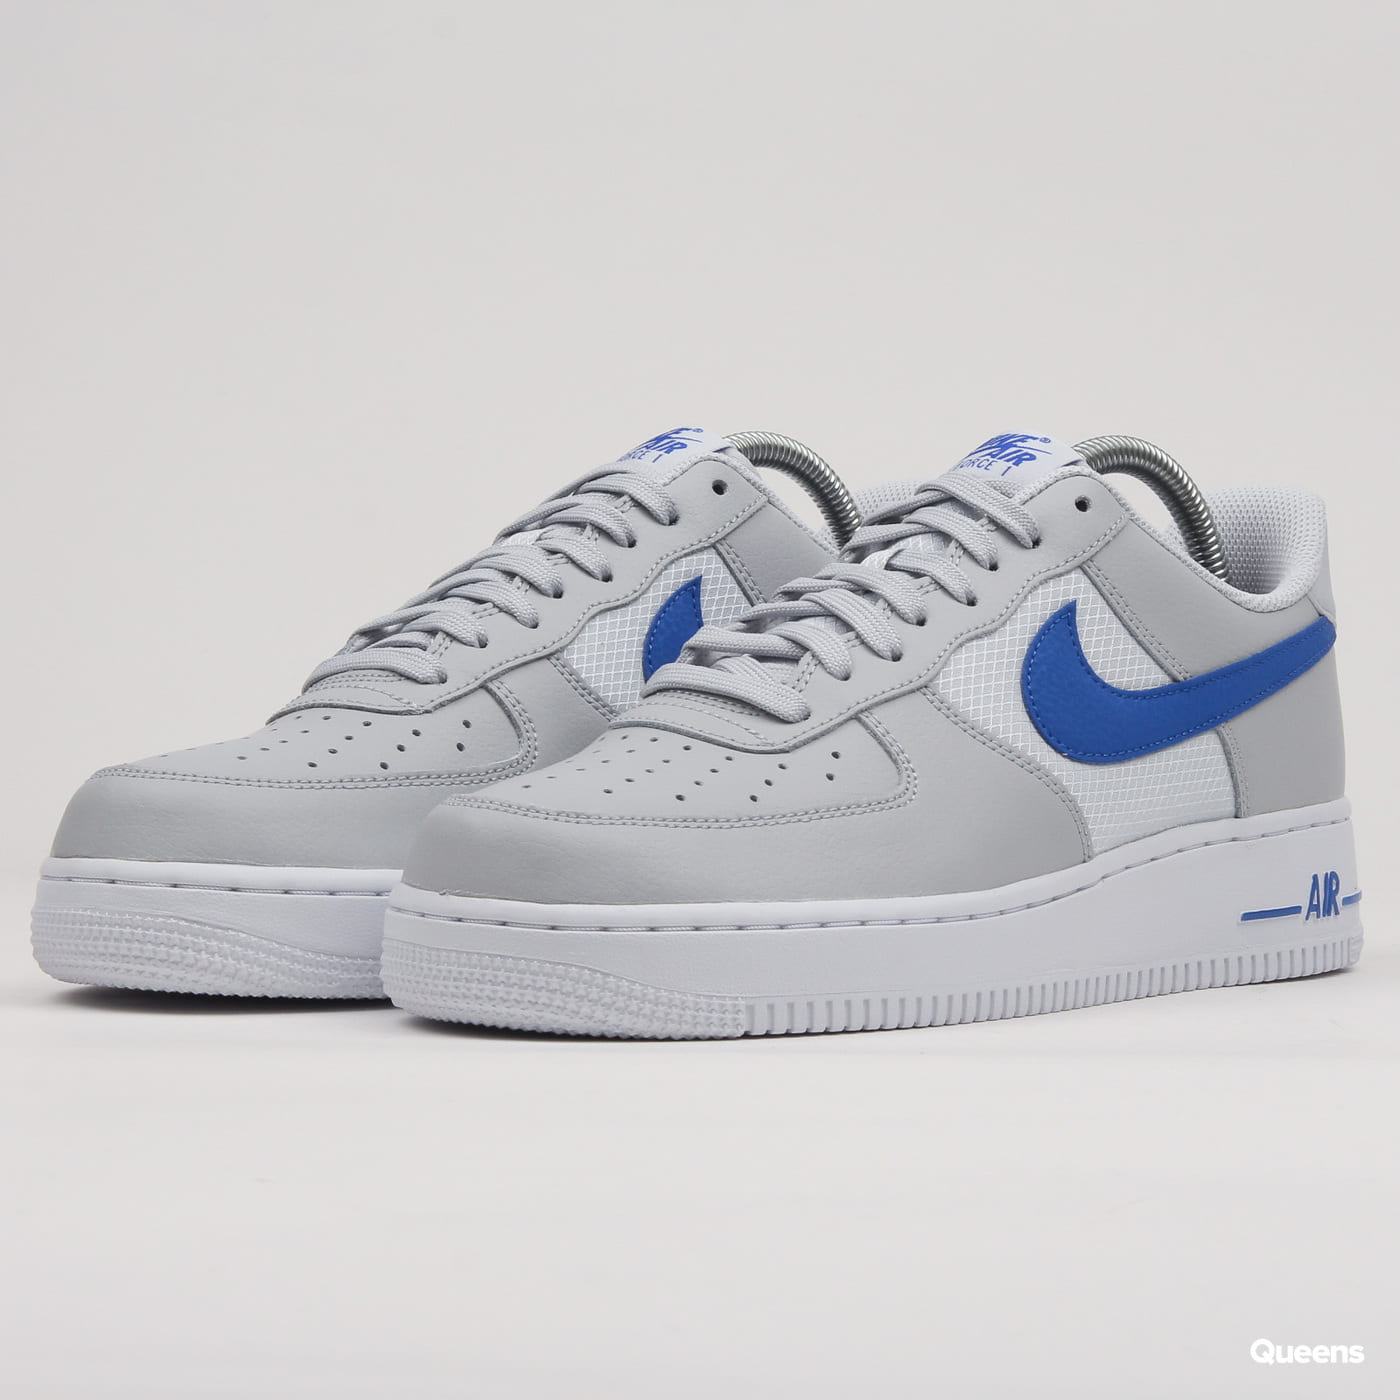 Nike Air Force 1 '07 LV8 pure platinum / racer blue